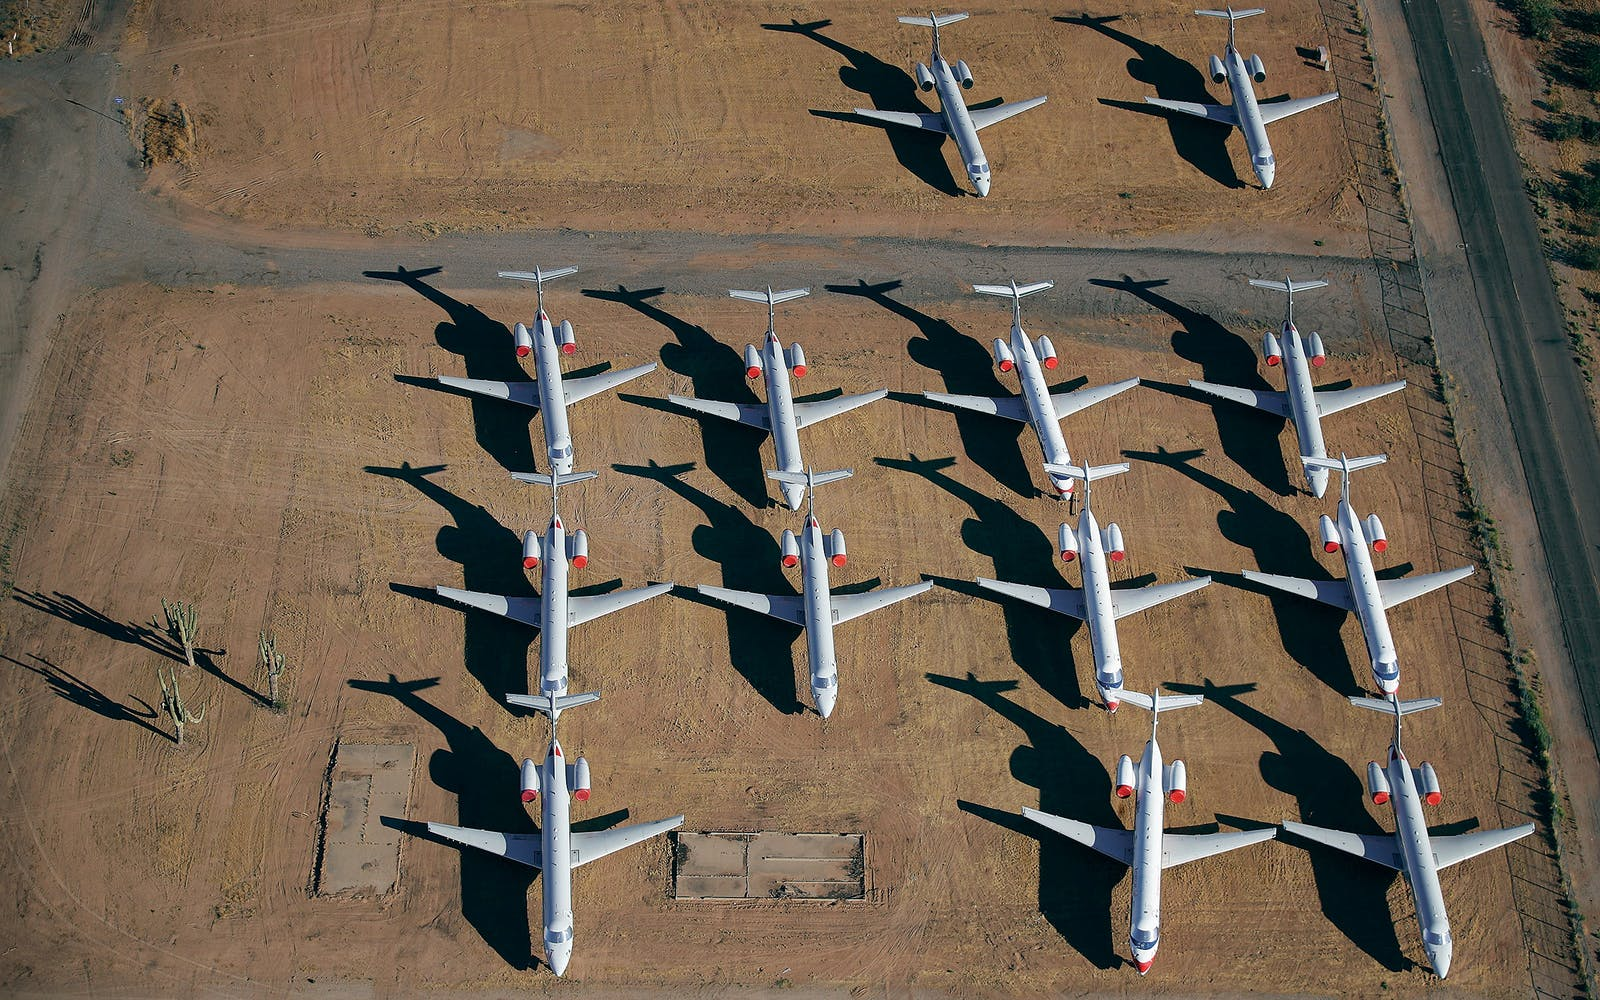 Decommissioned American planes.